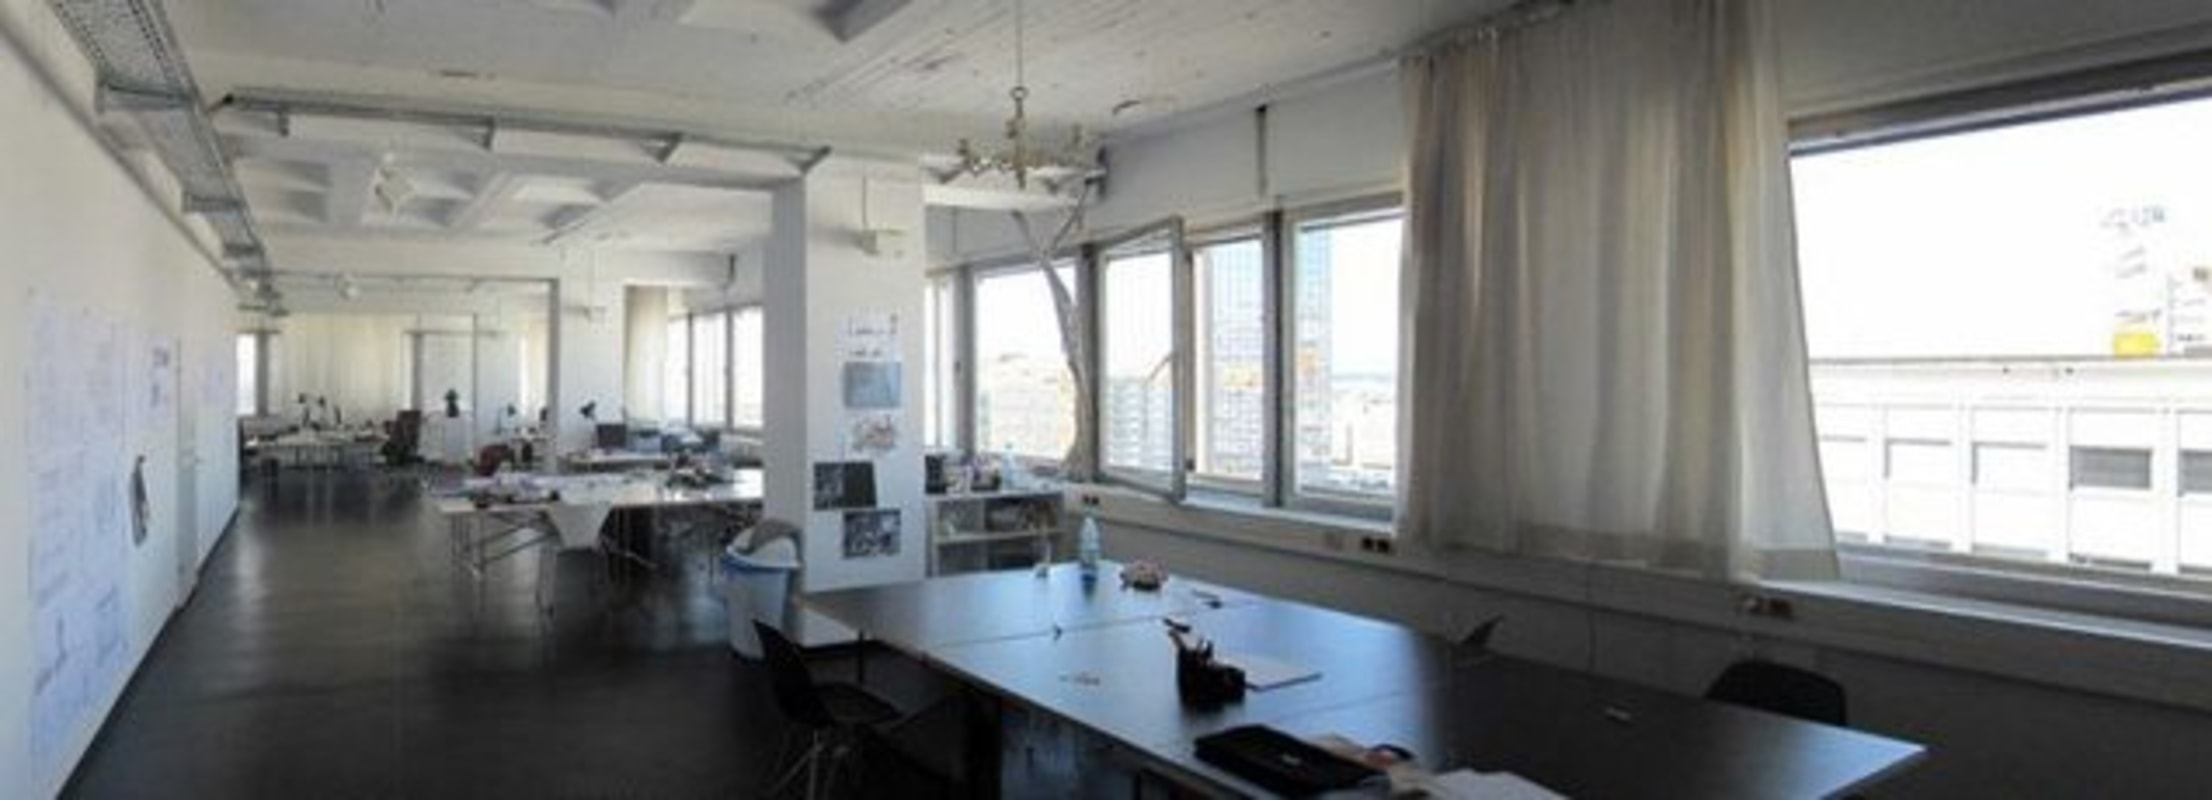 Our office space in Alexanderplatz